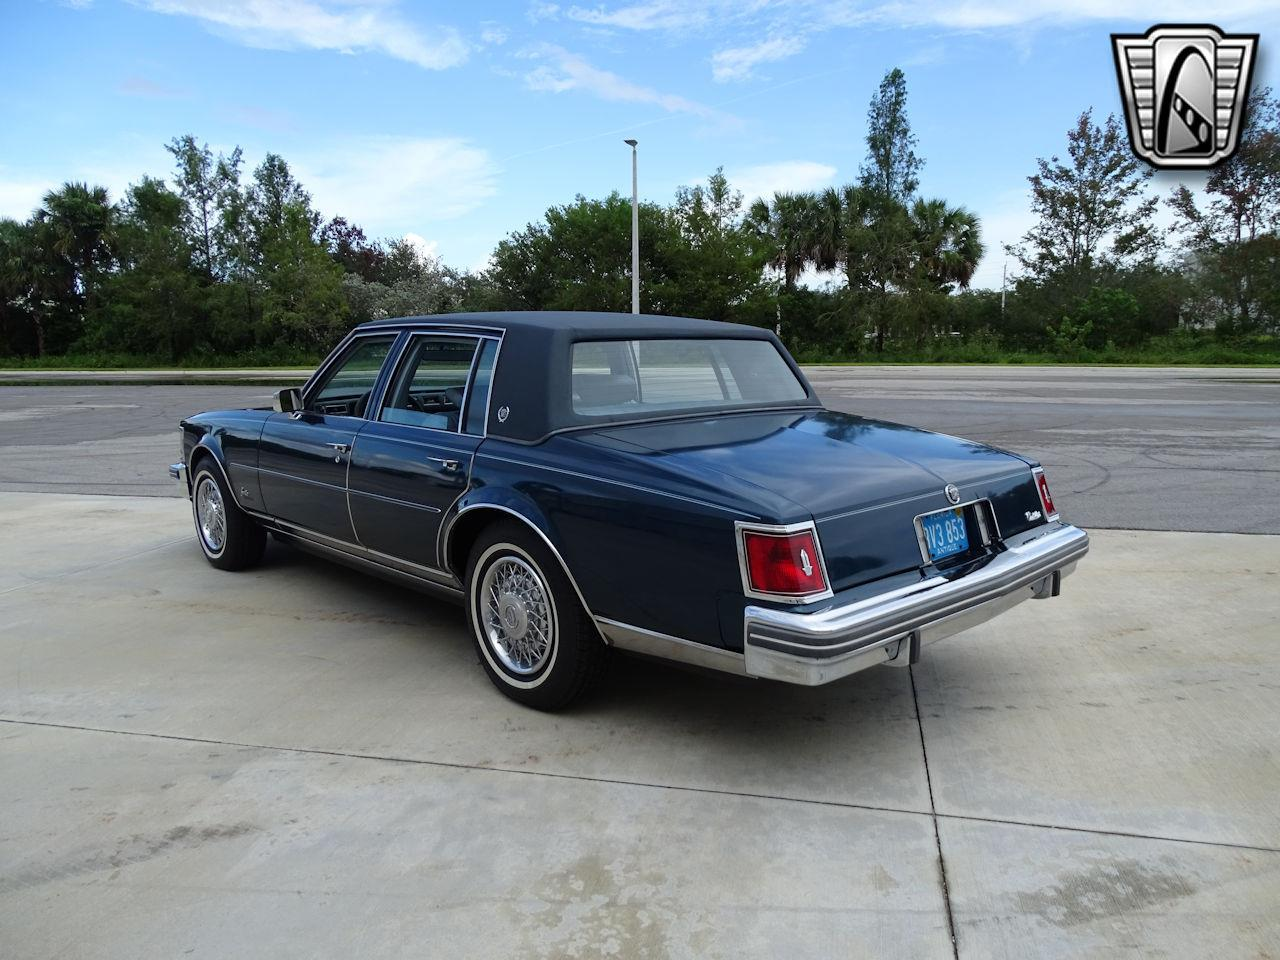 1979 Cadillac Seville (CC-1389471) for sale in O'Fallon, Illinois